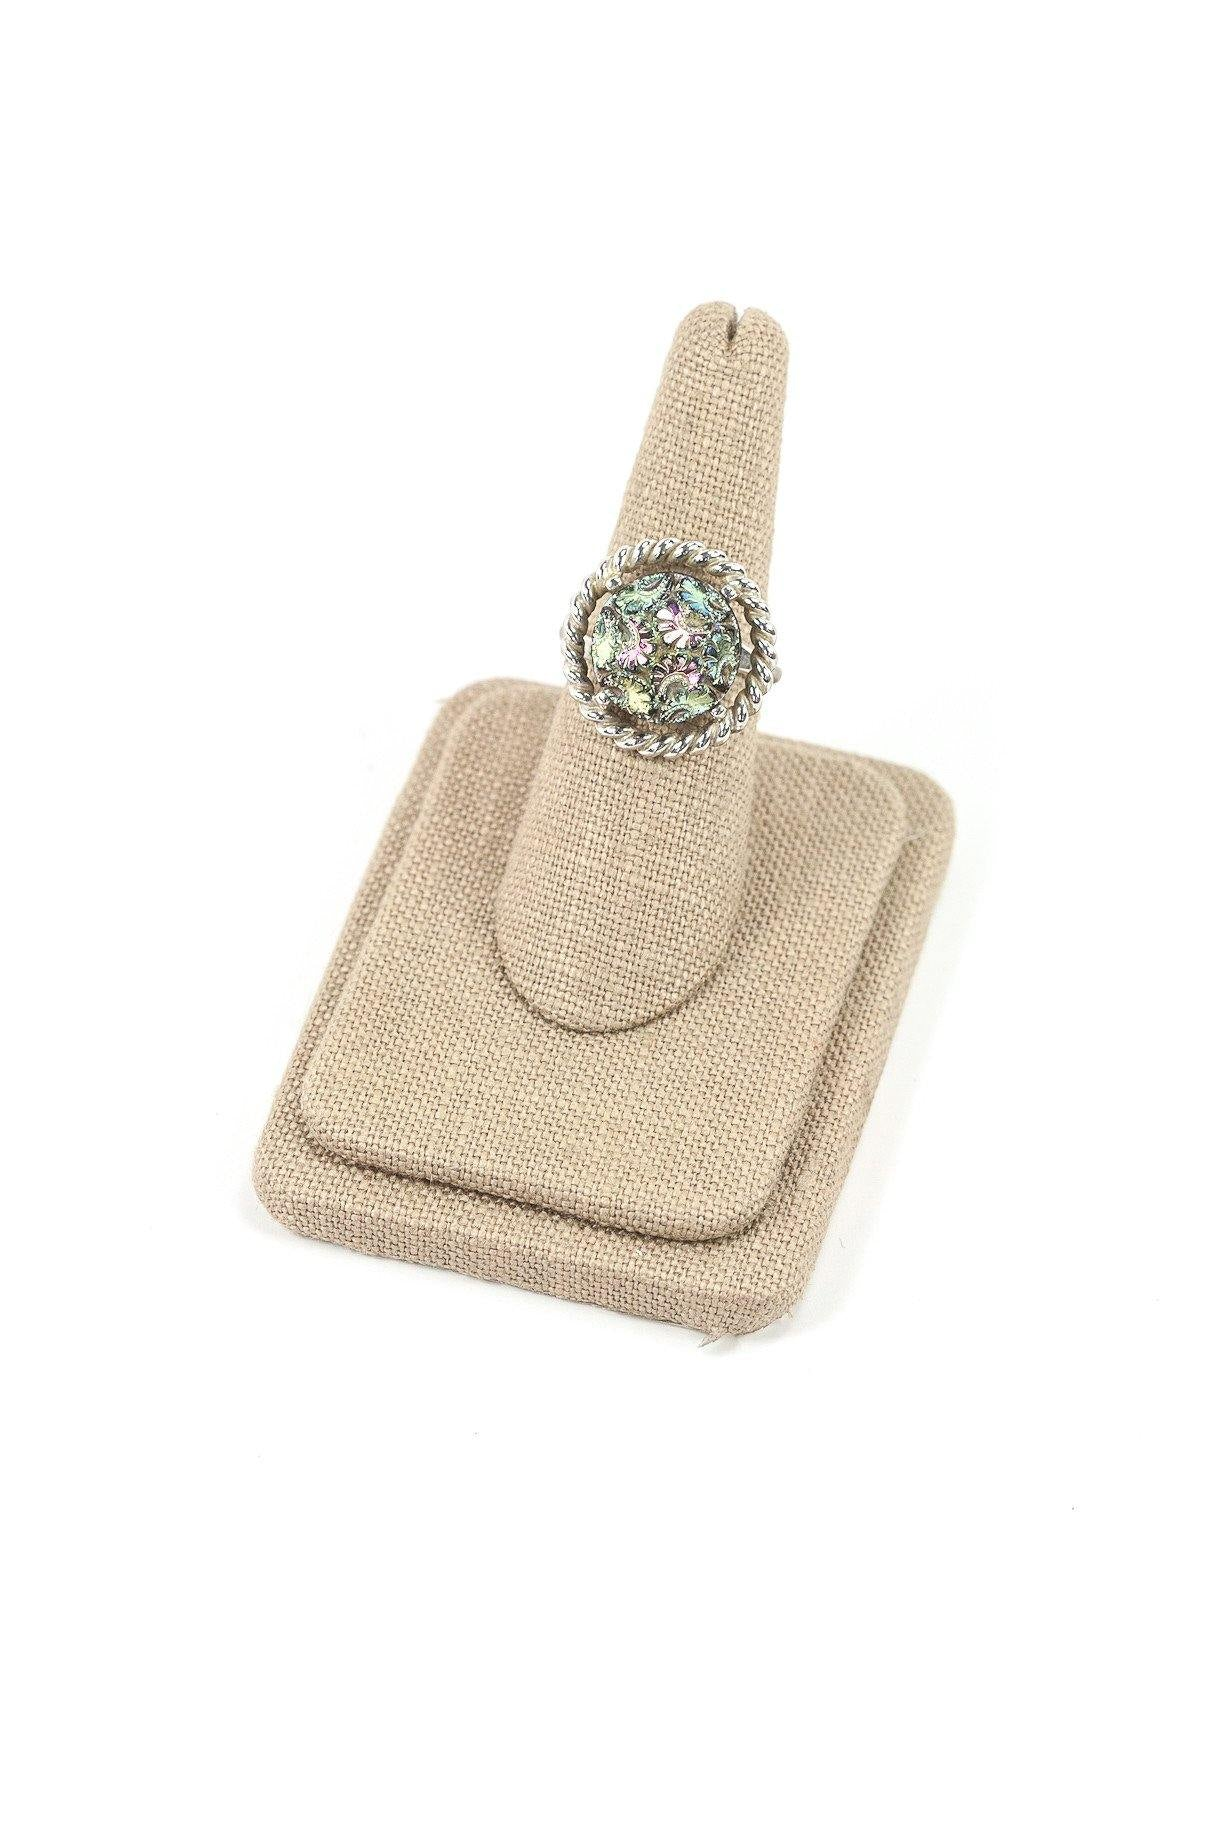 60's__Sarah Coventry__Adjustable Metallic Cocktail Ring